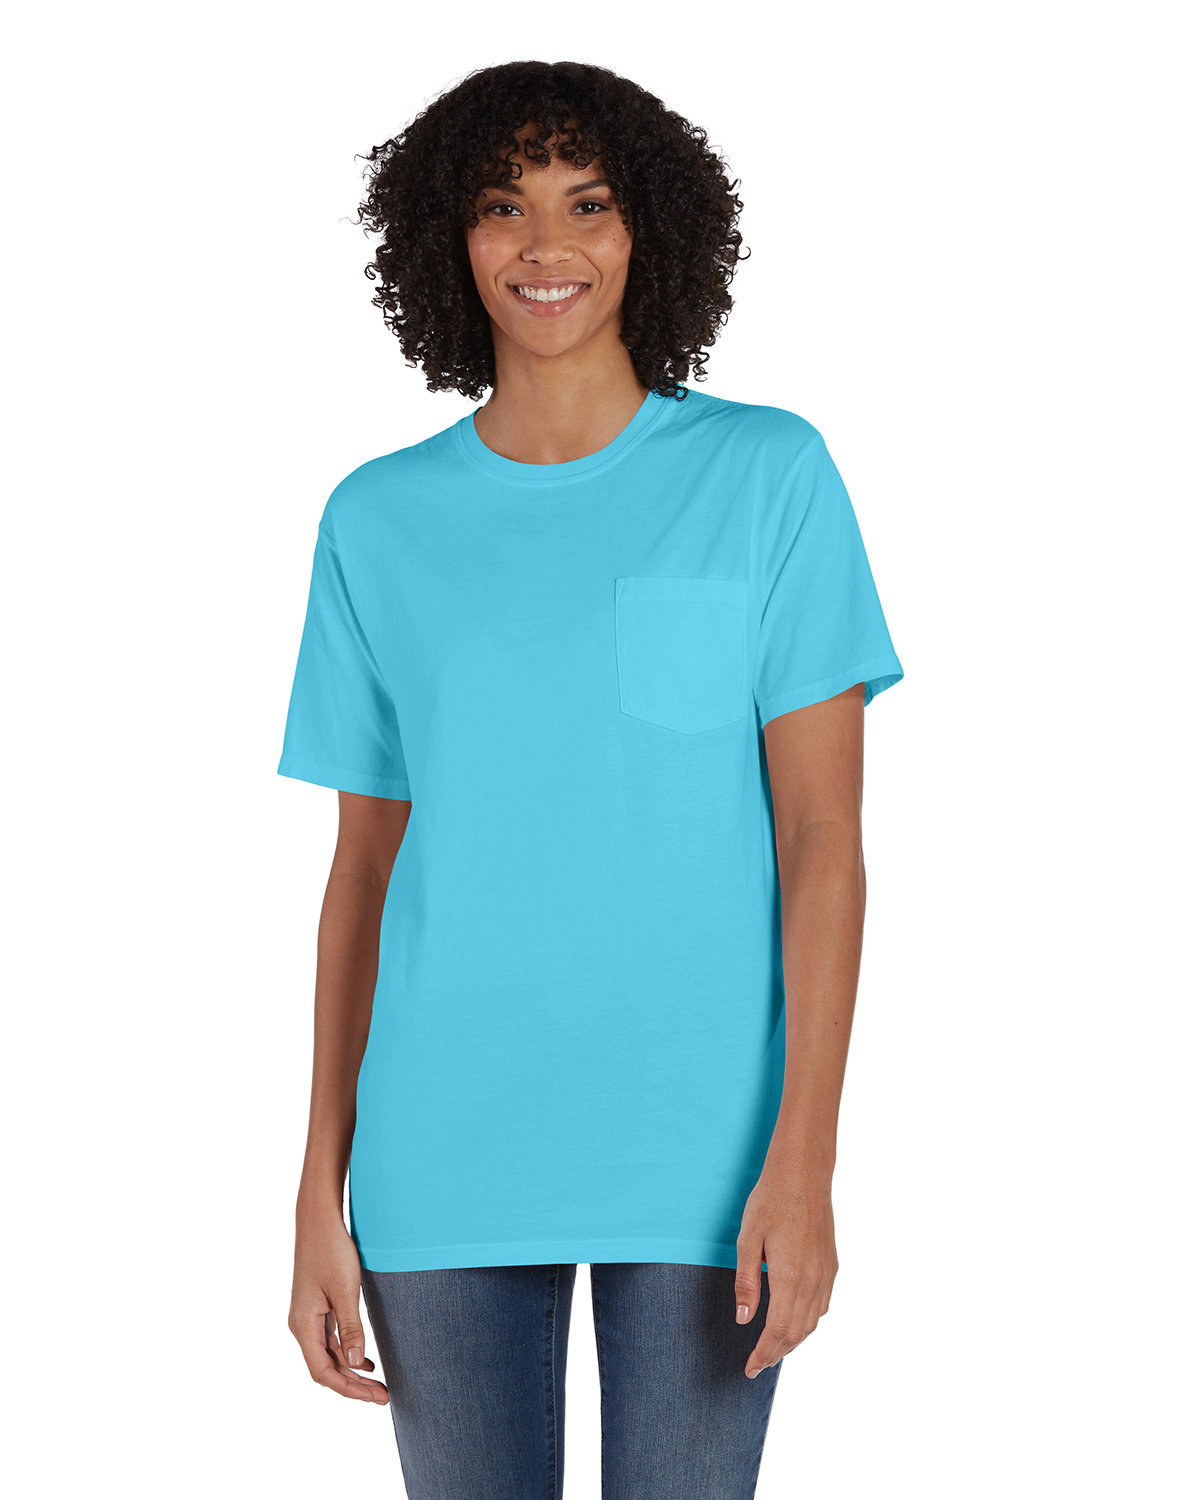 ComfortWash by Hanes Unisex Garment-Dyed T-Shirt with Pocket FRESHWATER